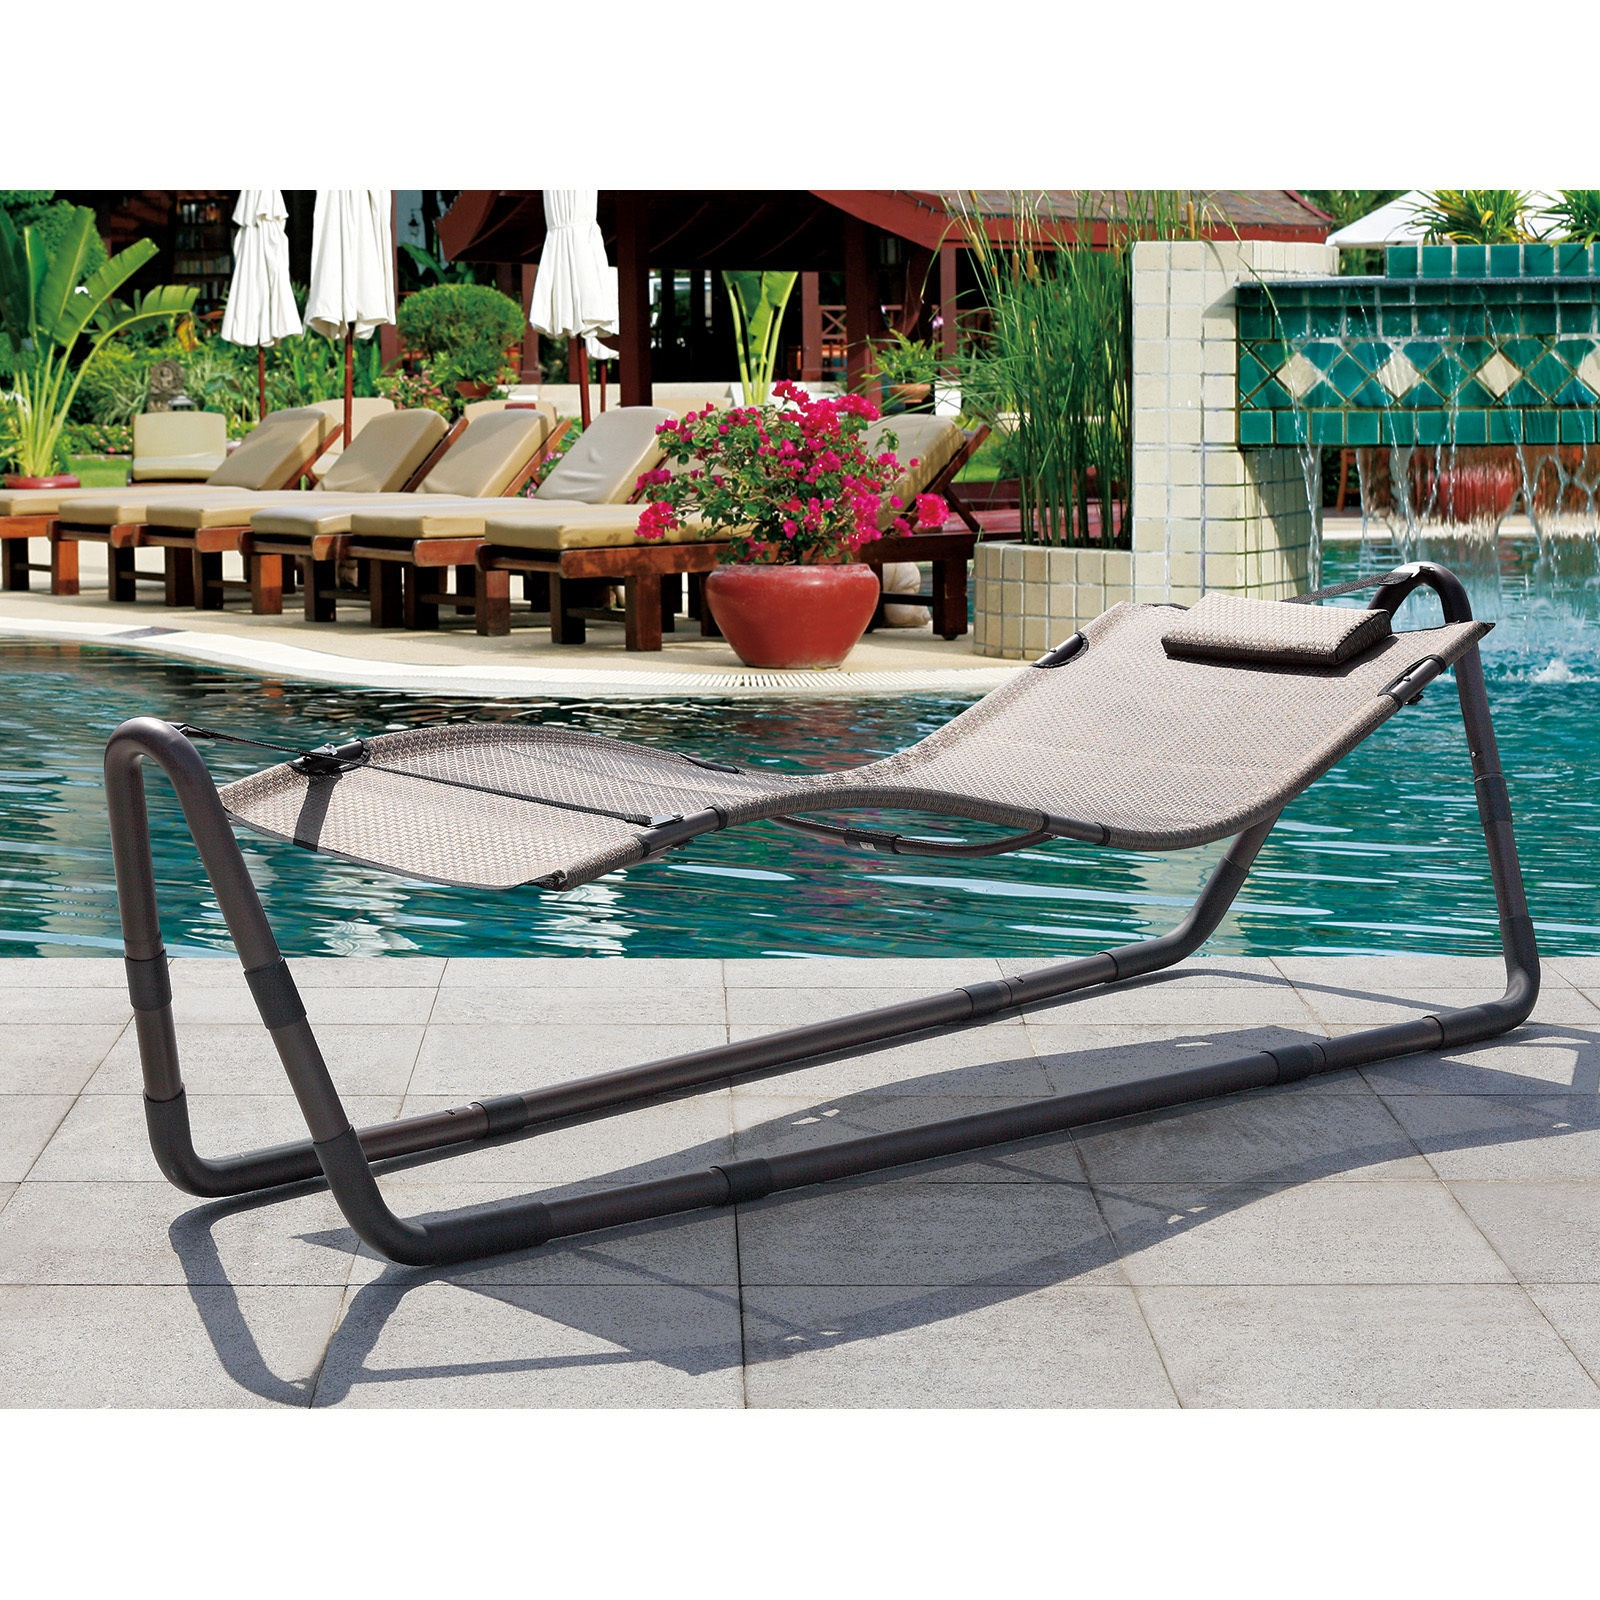 Modern outdoor patio hammock sun bed deck pool lounge chair for Garden pool loungers